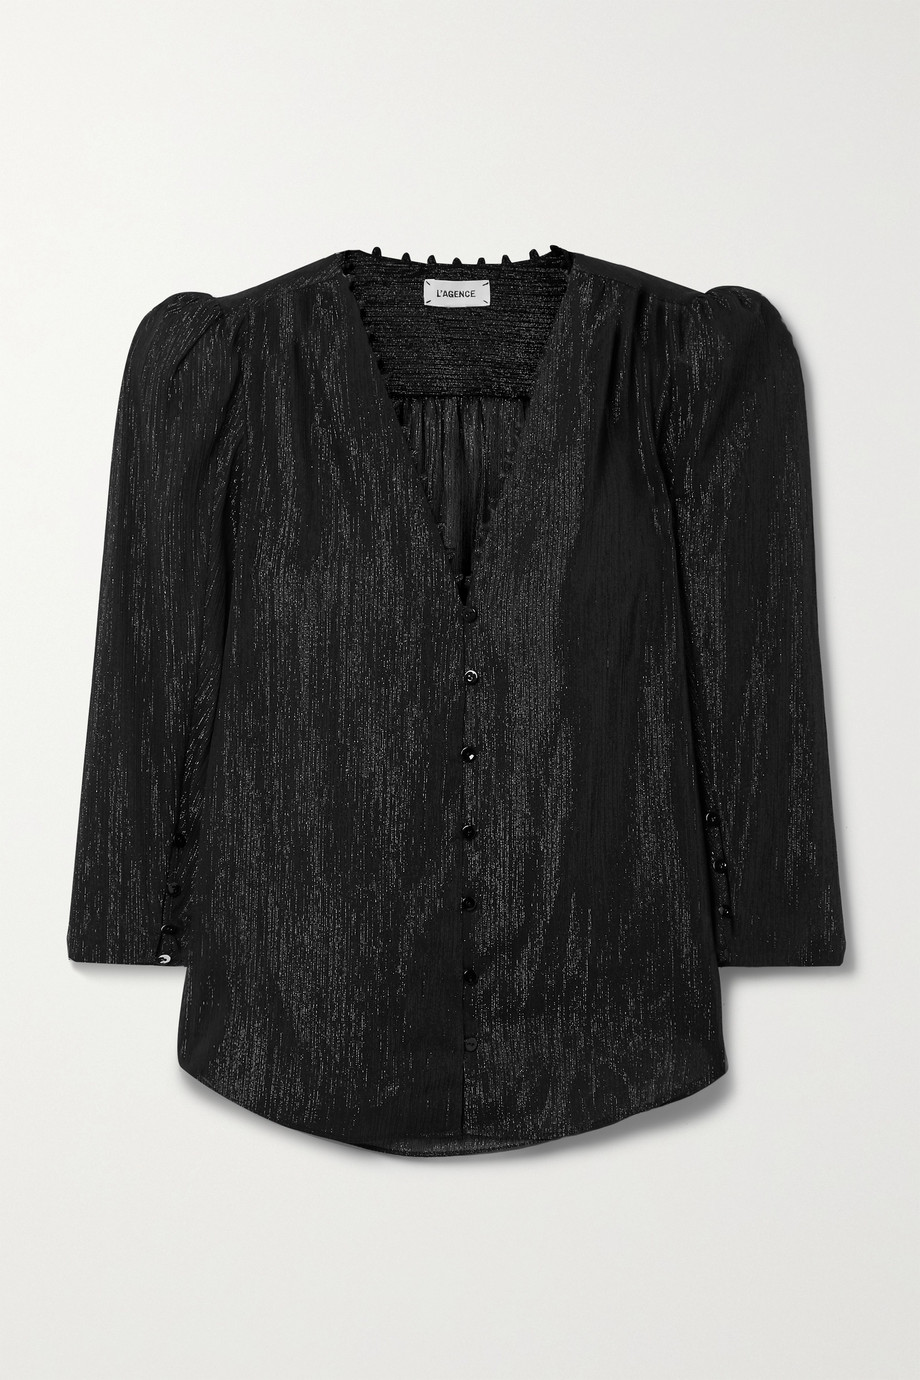 L'AGENCE Kimberly metallic crepon blouse